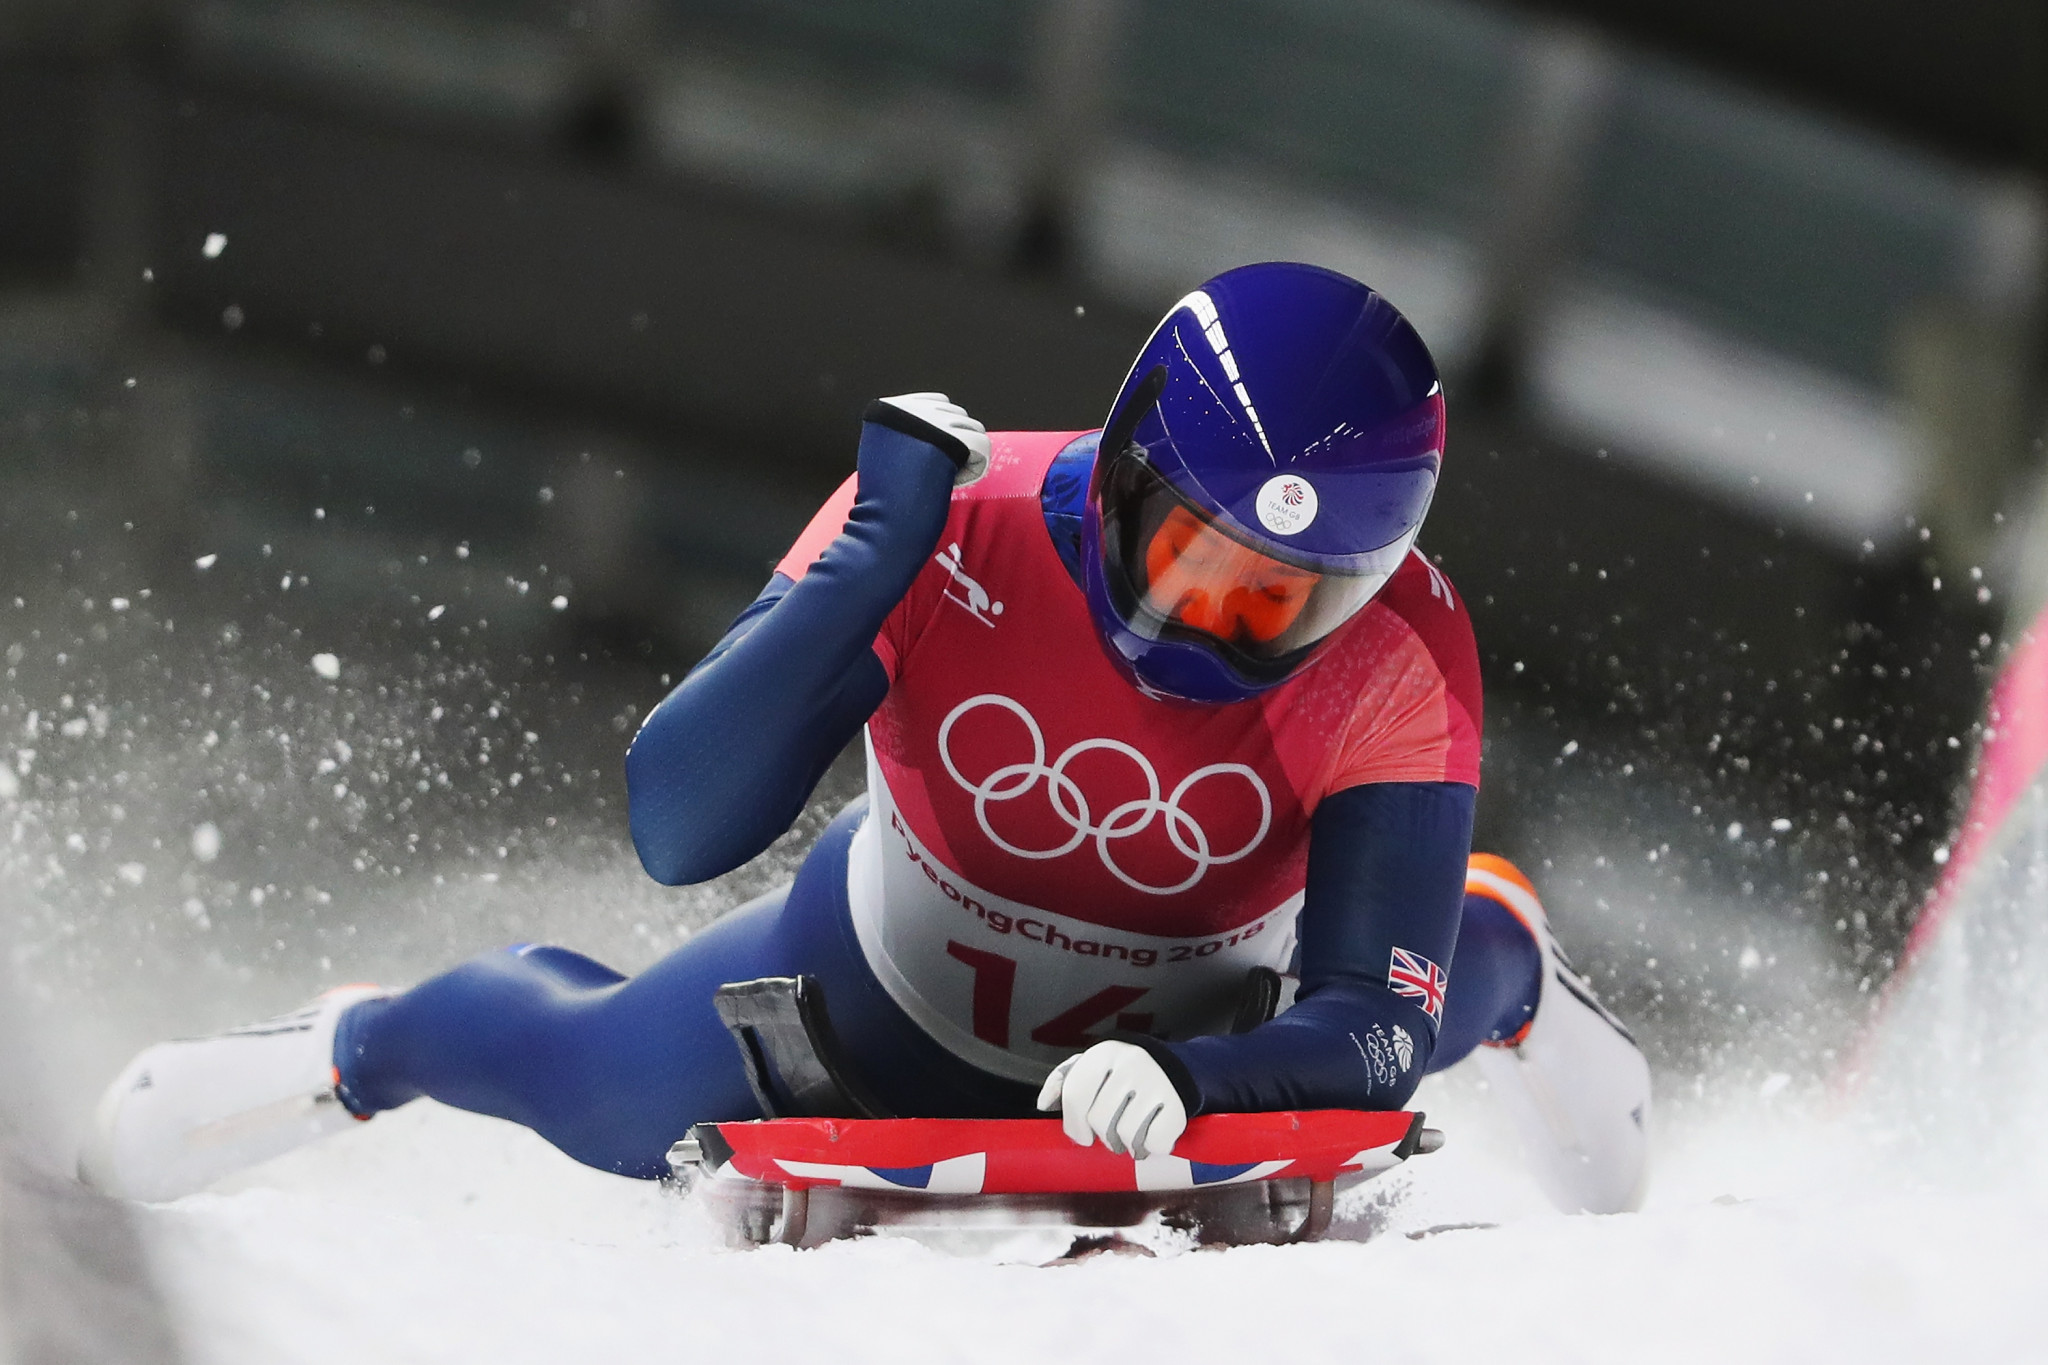 Lizzy Yarnold successfully defended her women's skeleton Olympic title at Pyeongchang 2018 ©Getty Images